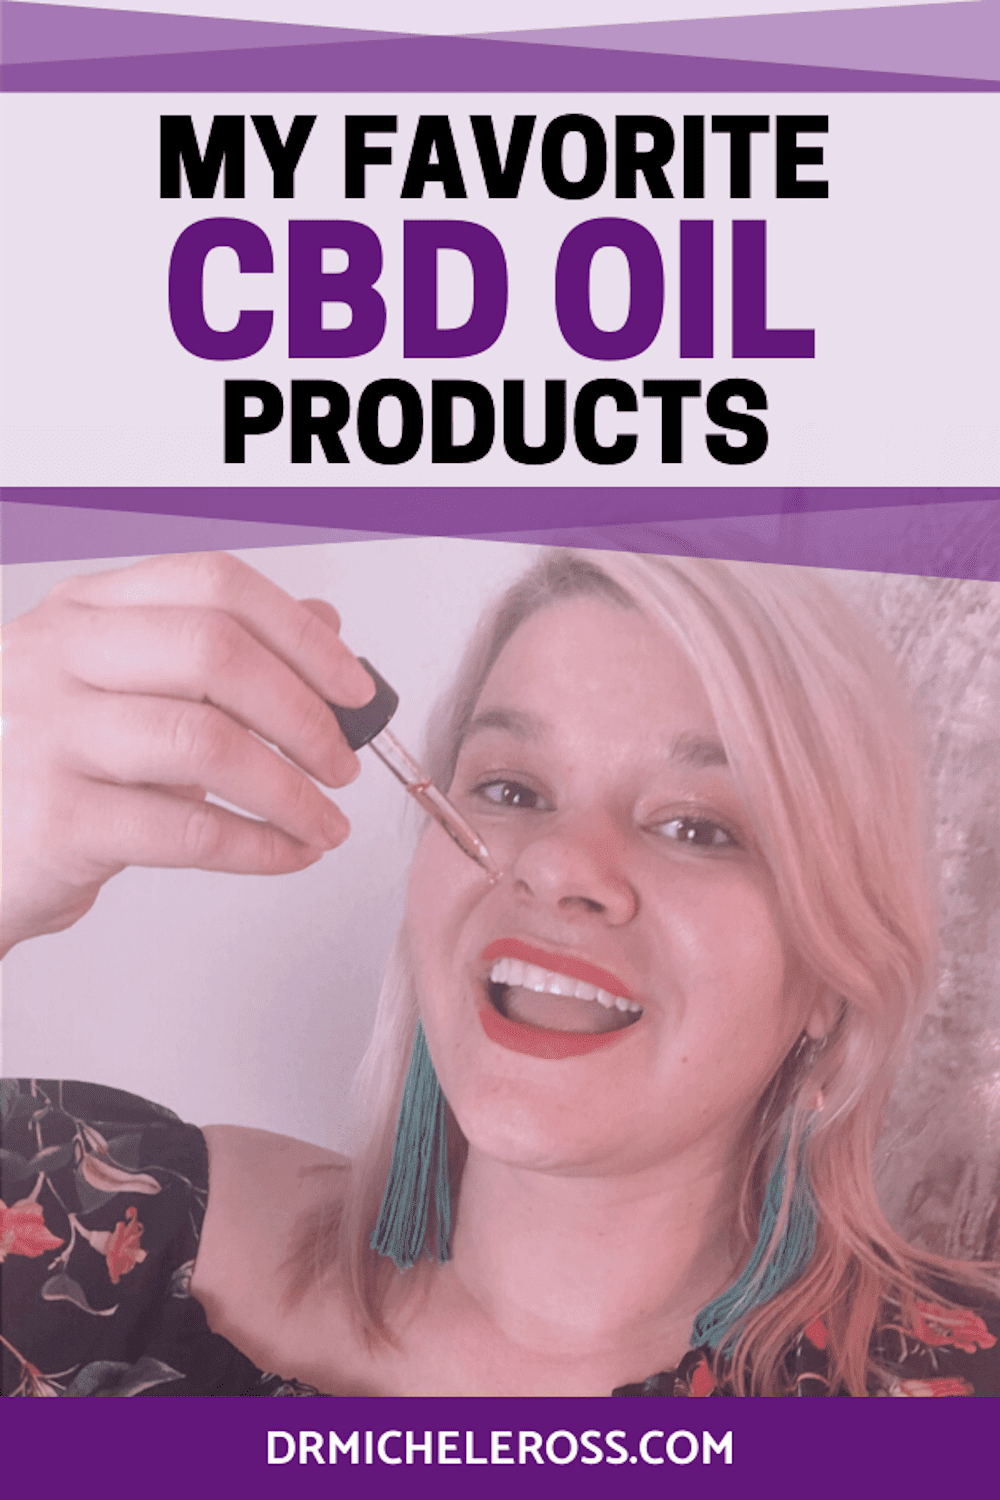 My Favorite CBD Oil Products